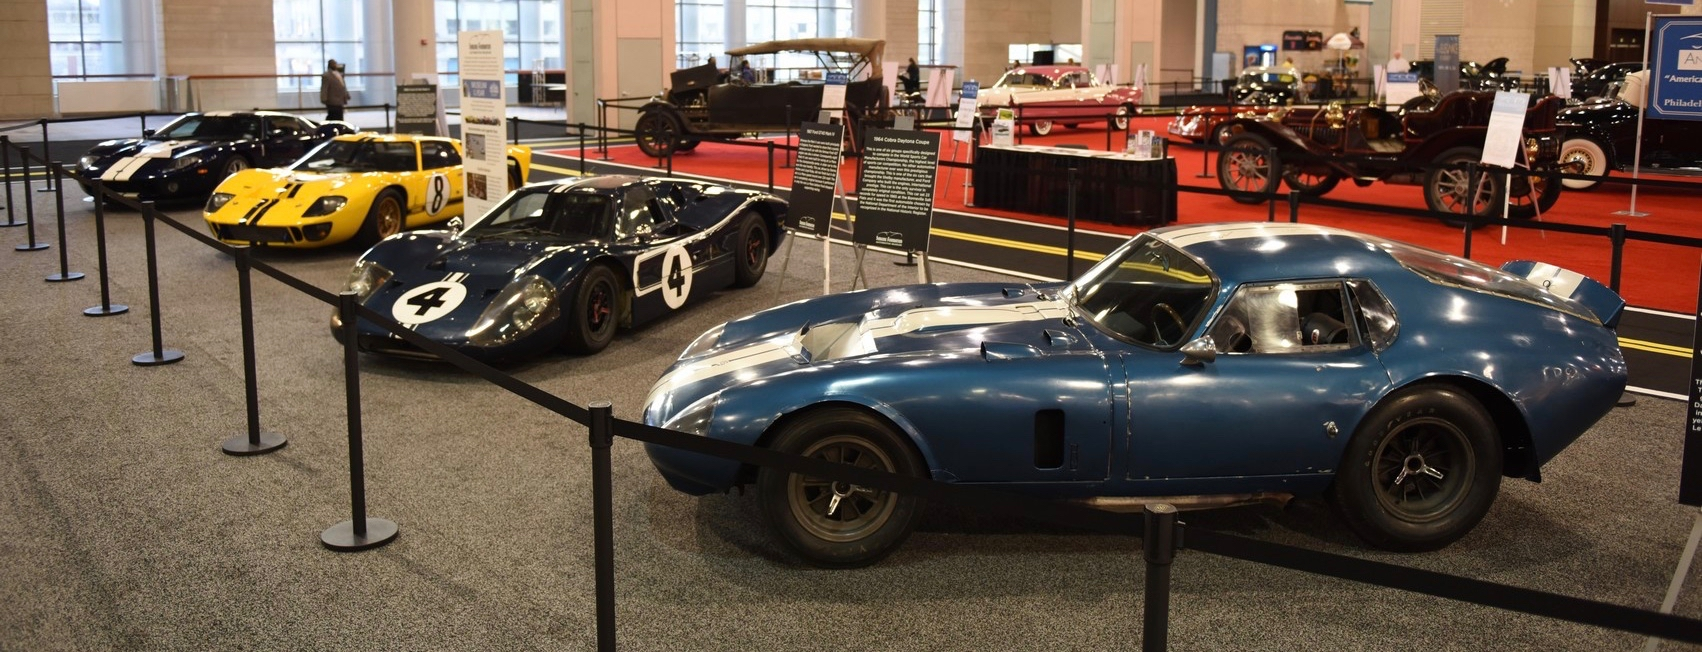 Some of the vehicles in Simeone's 2016 Philadelphia Auto Show display | Museum photos